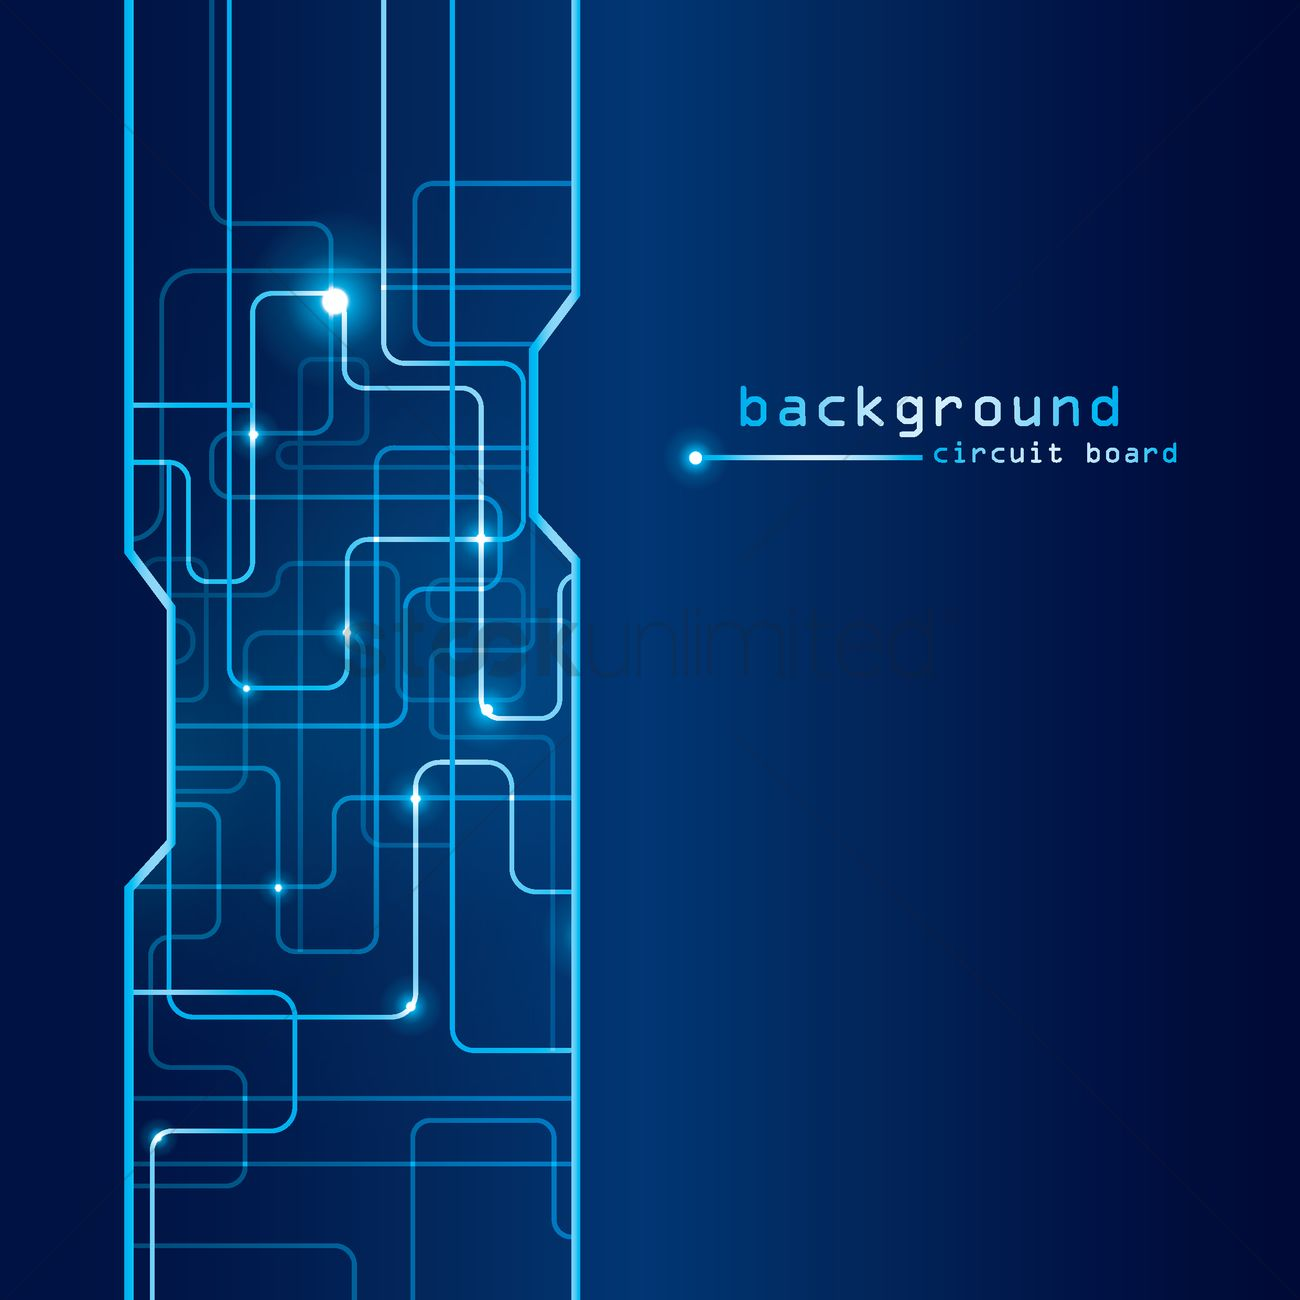 Technical circuit board background Vector Image - 1789164 ...